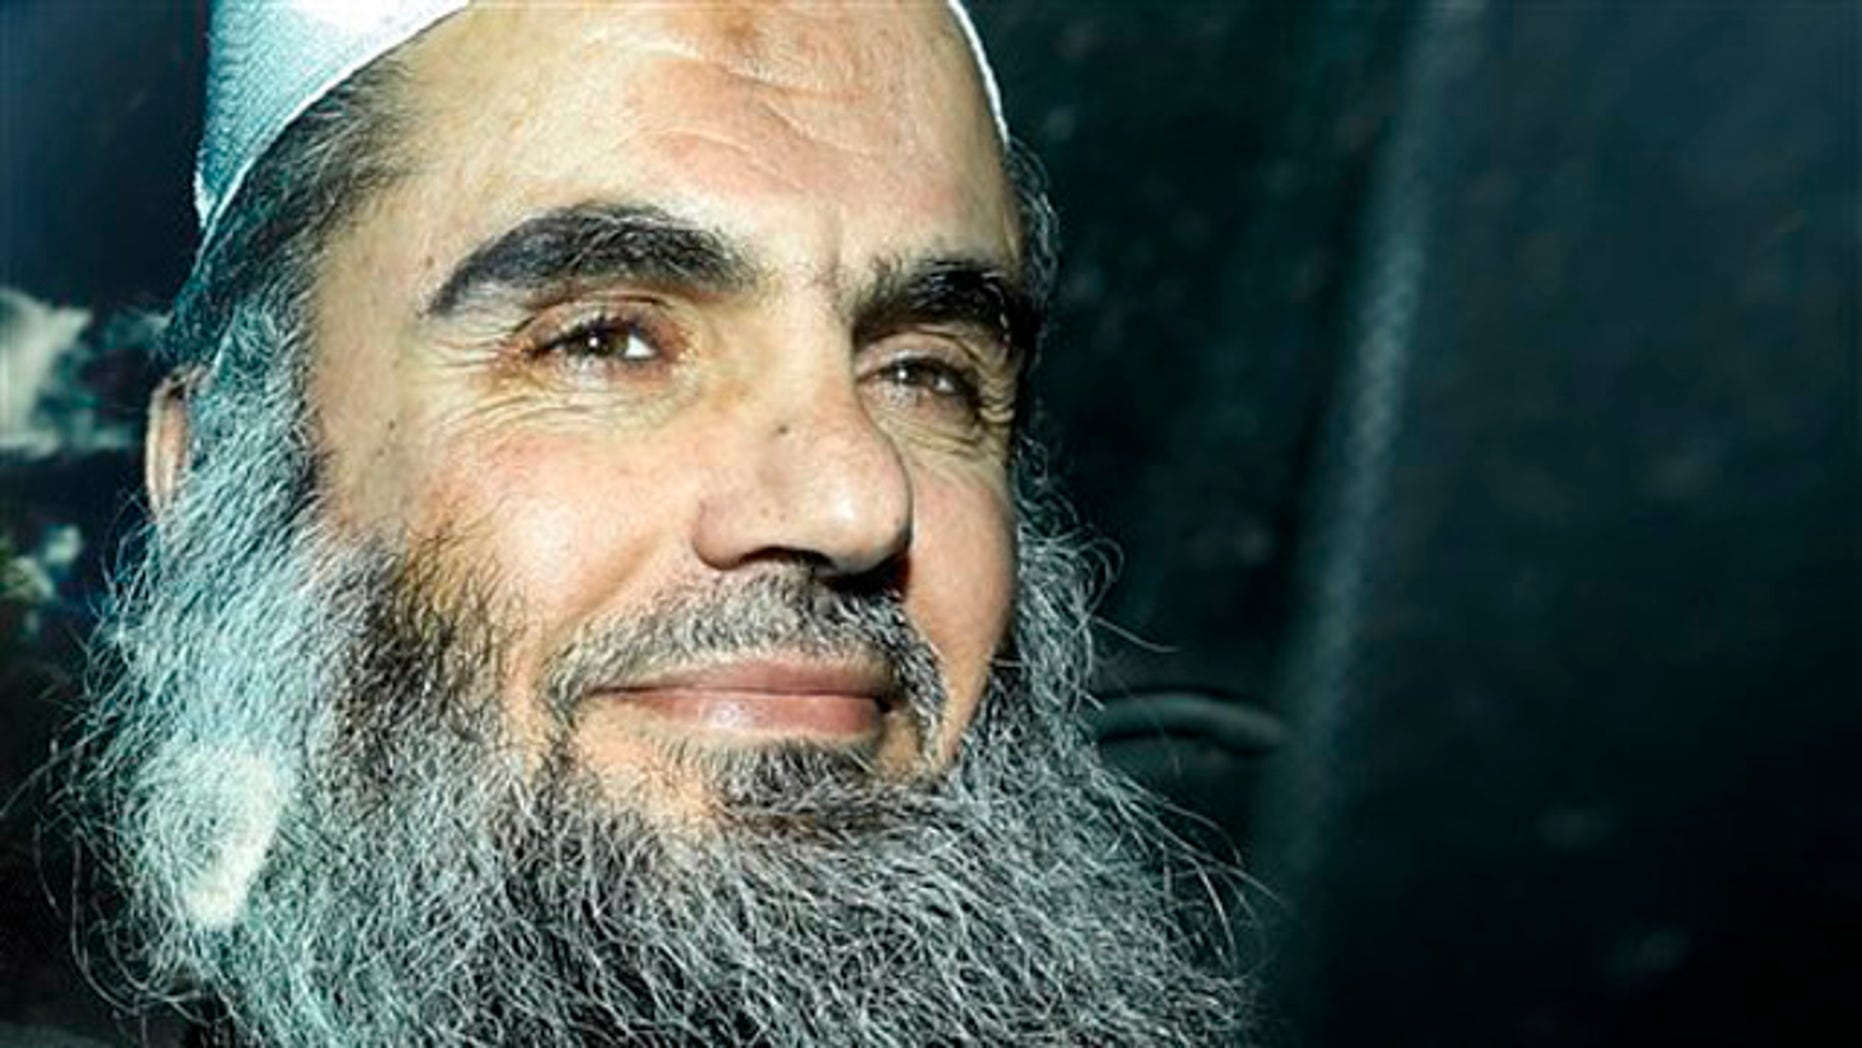 April 17, 2012: Abu Qatada is driven away after being refused bail at a hearing at London's Special Immigration Appeals Commission, which handles deportation and security cases, in London.